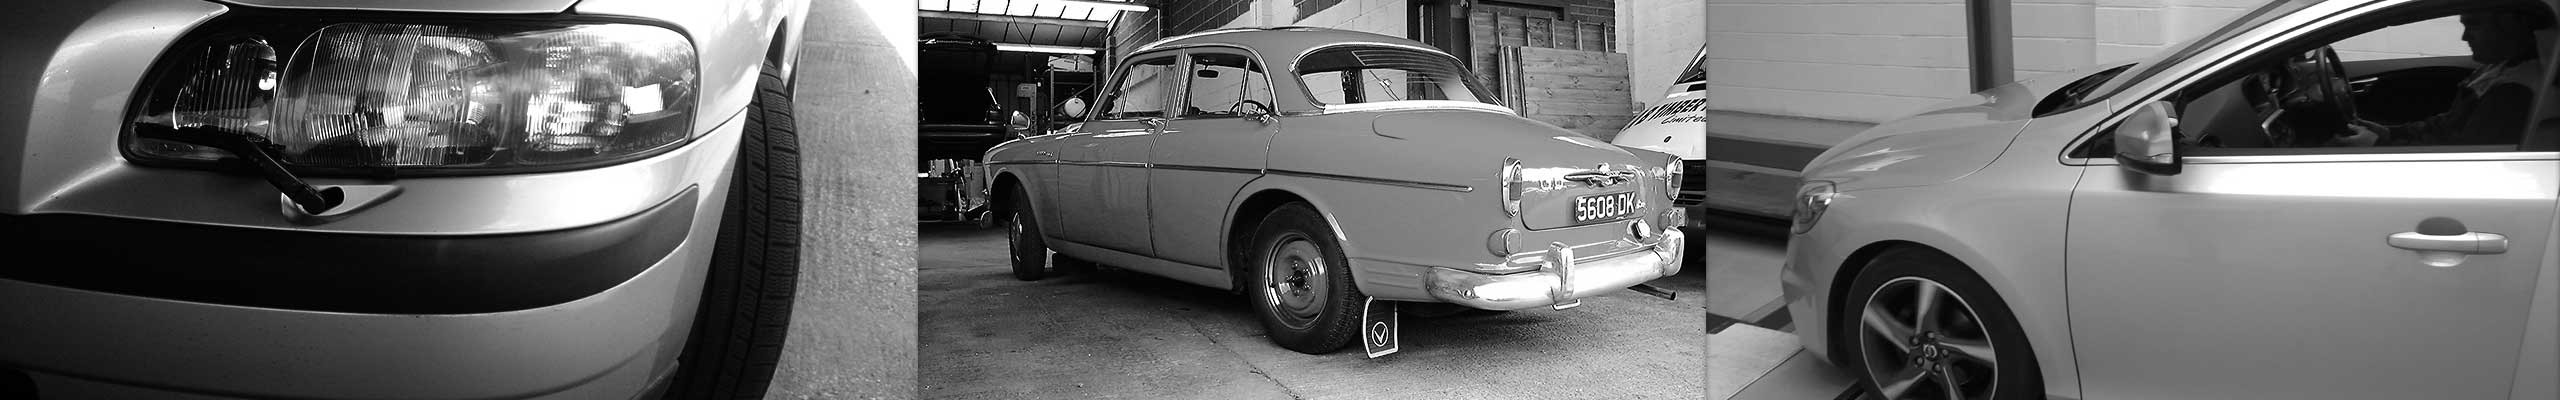 lovely black and white wide montage of very old to new volvos entering excels garage